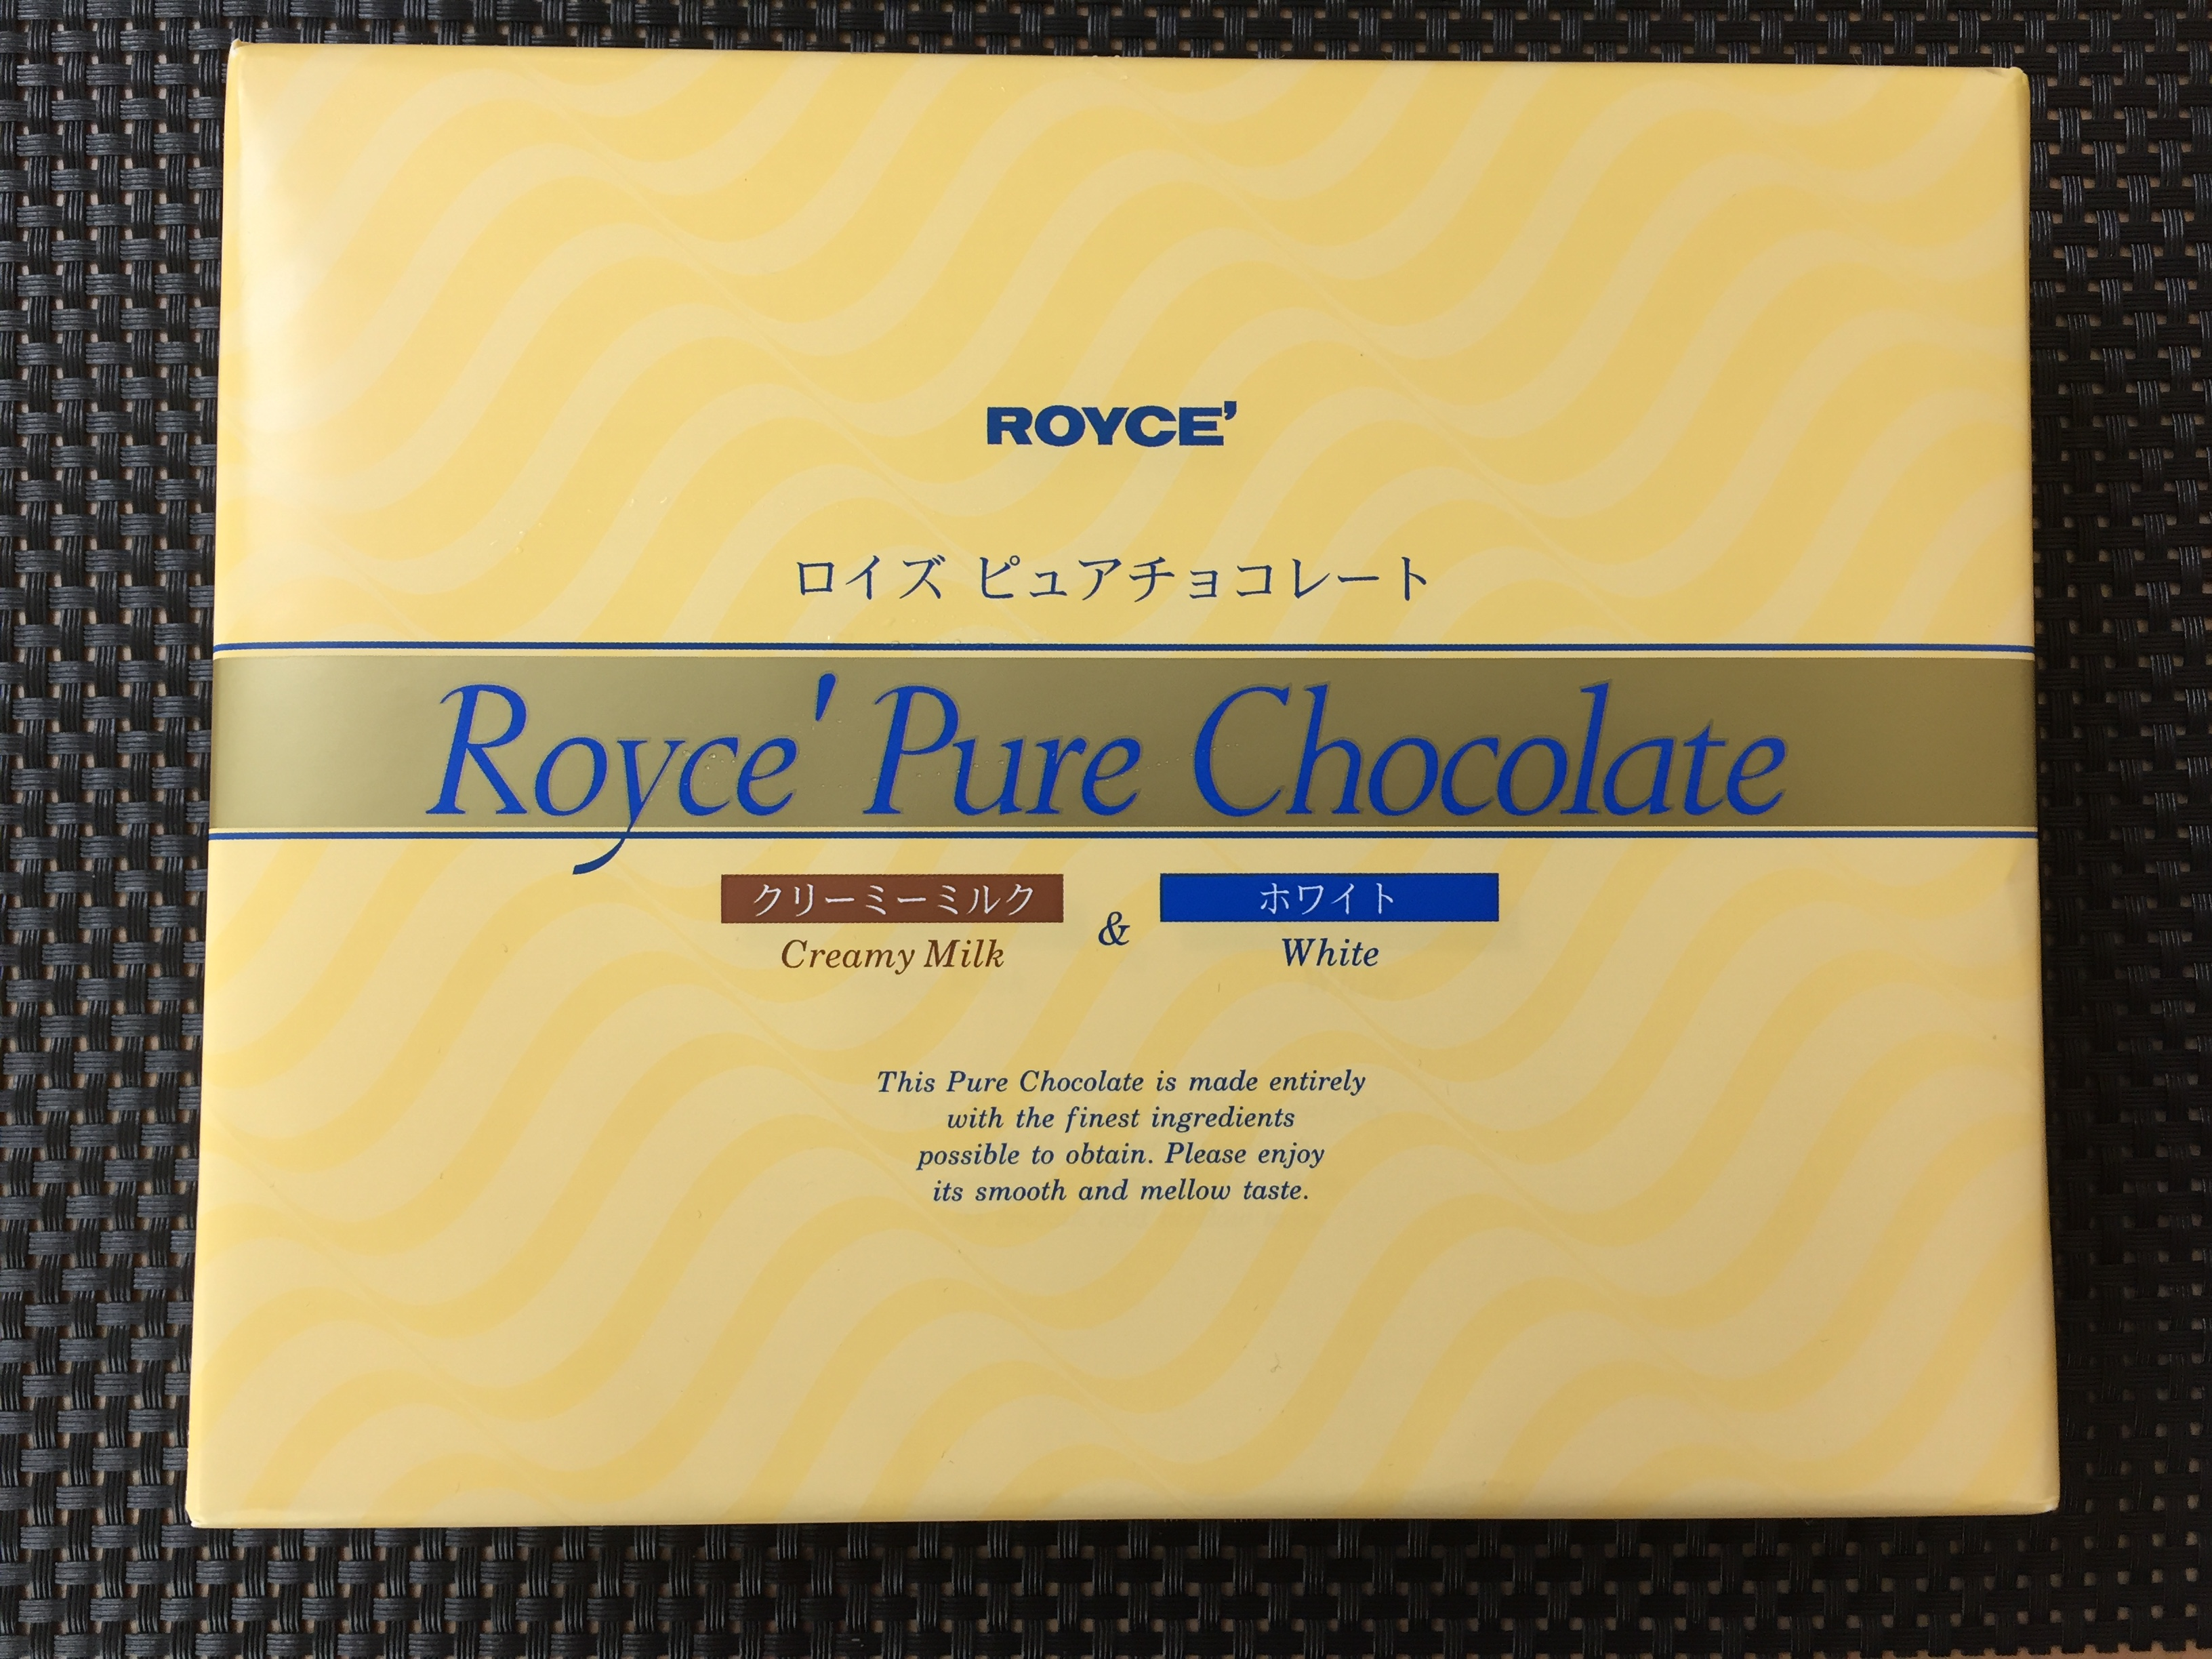 [ROYCE] Royce' Pure Chocolate 크리미 ..